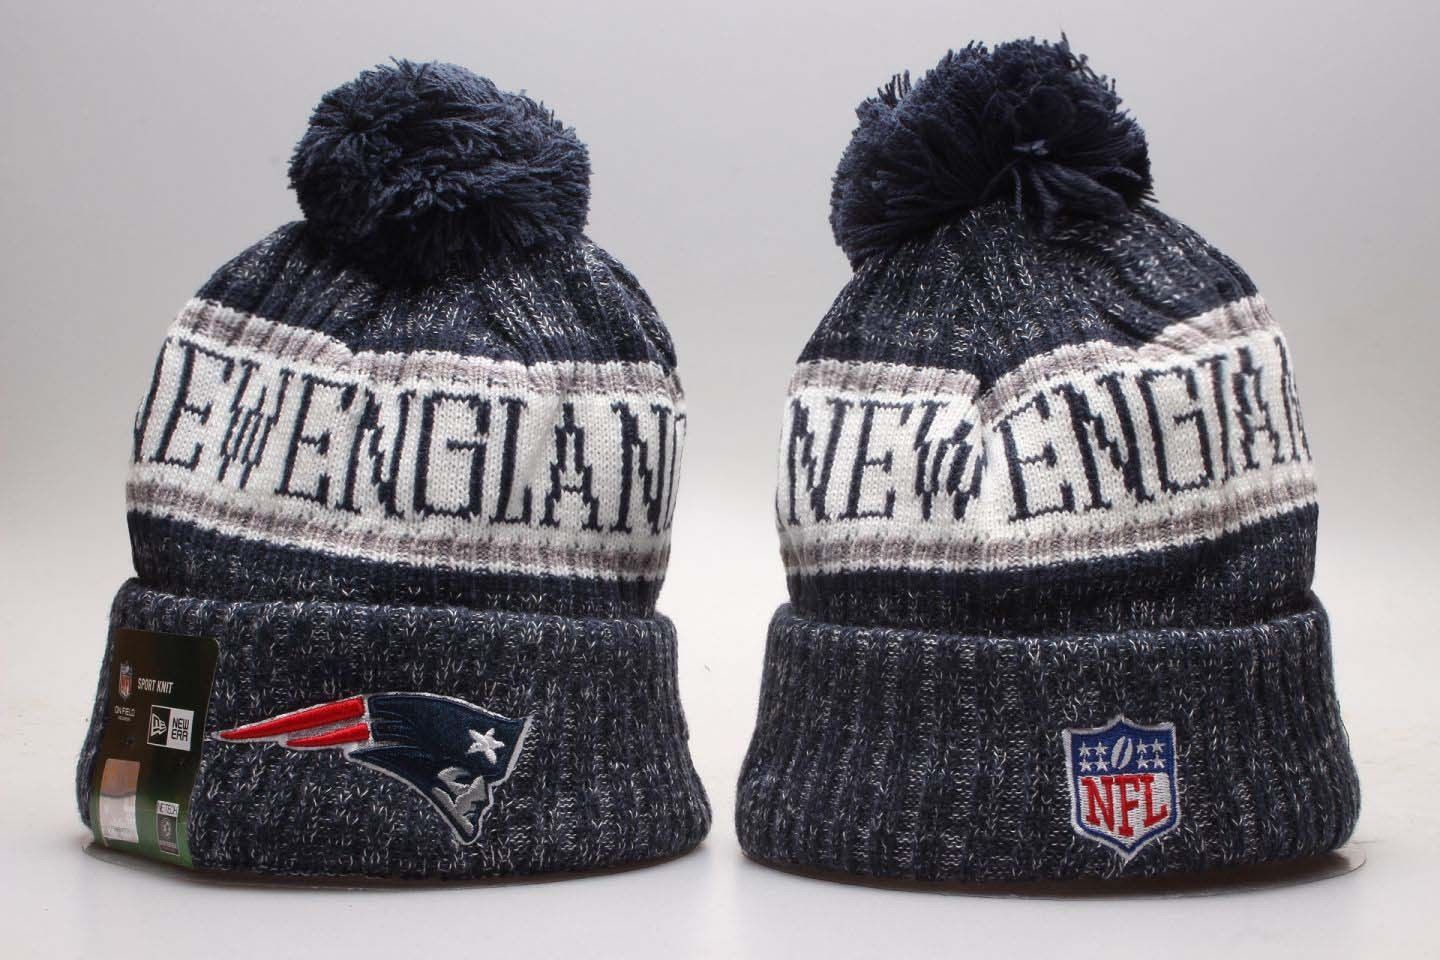 2018 New England Patriots New Era Knit Hat On Field Sideline Beanie Stocking Cap Dallas Cowboys Hats Oakland Raiders Beanie New England Patriots